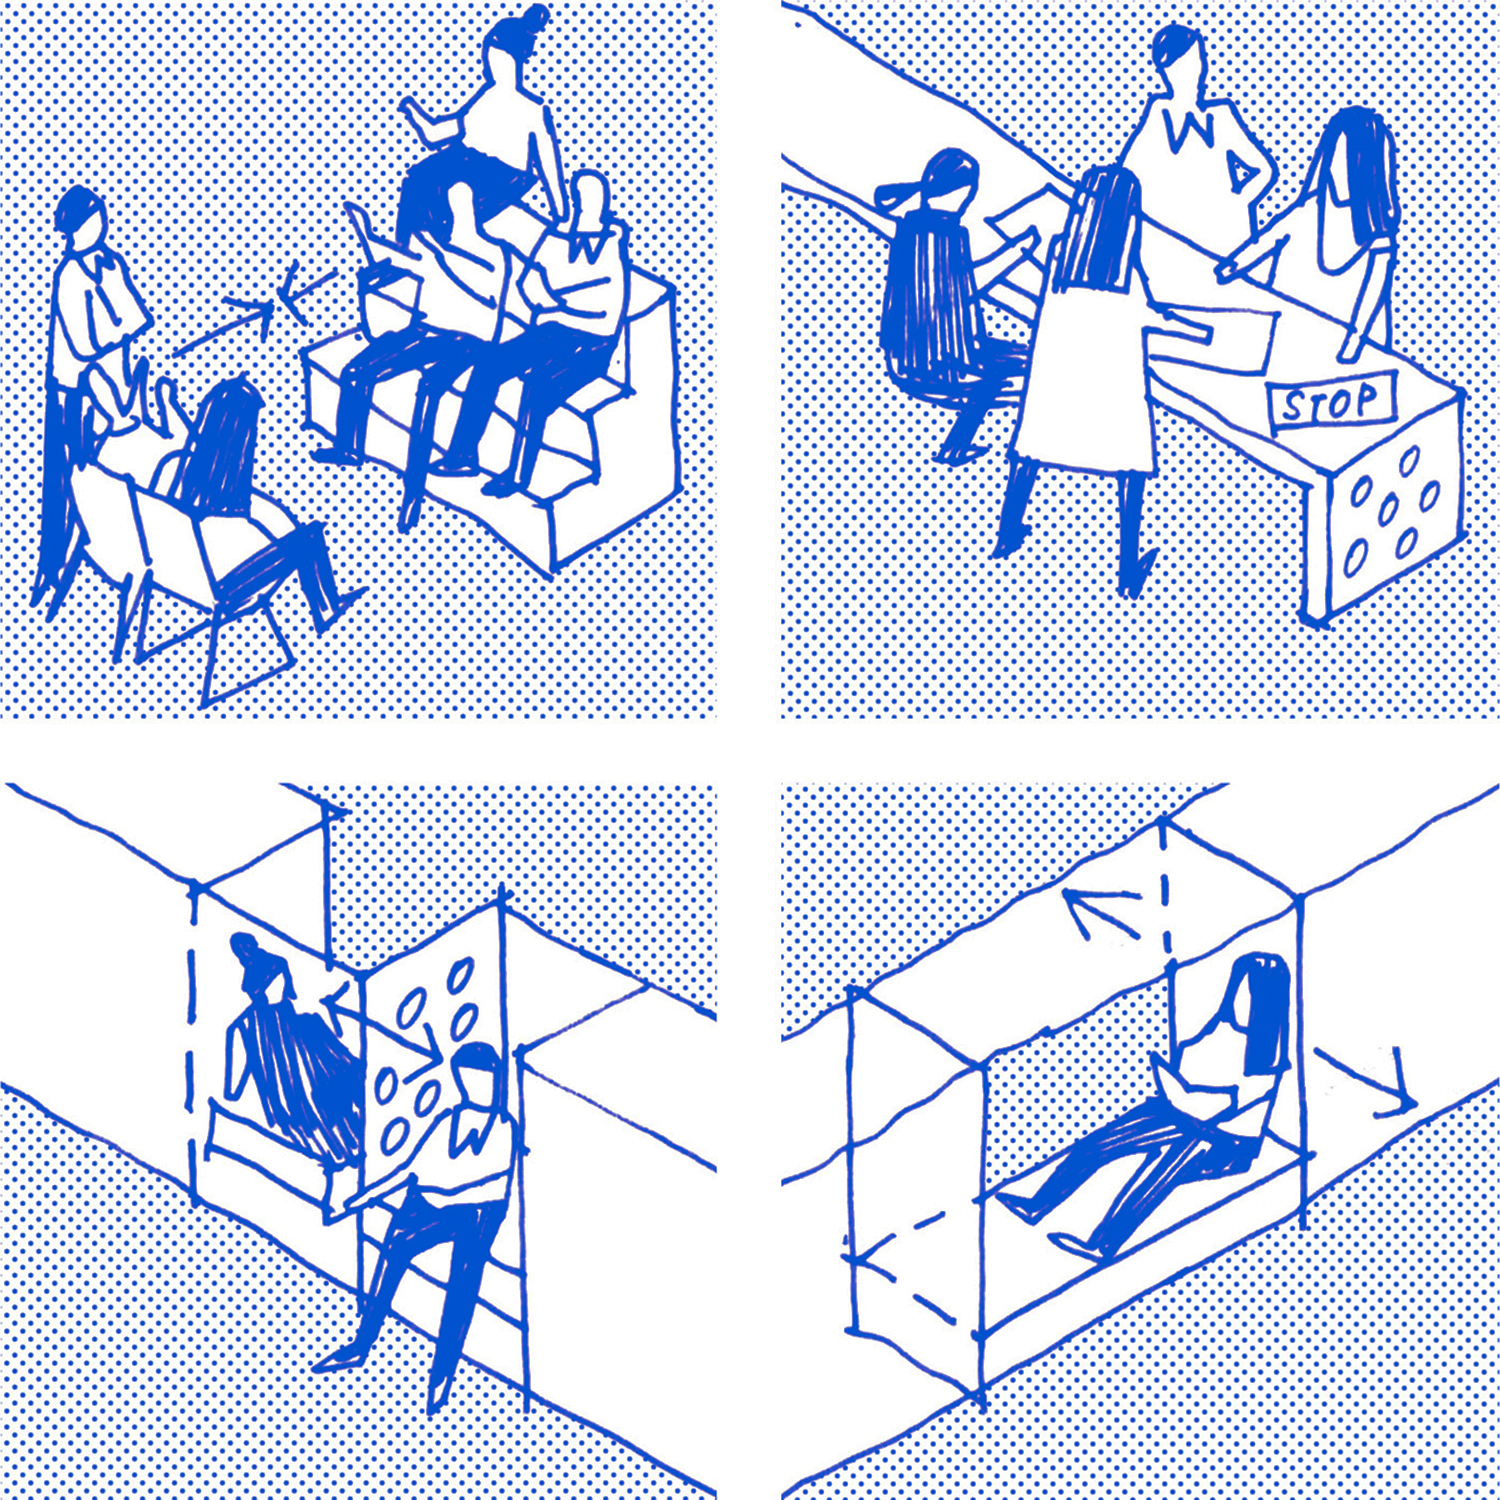 timothy rodgers ngv competition 2017 diagrams blue.jpg